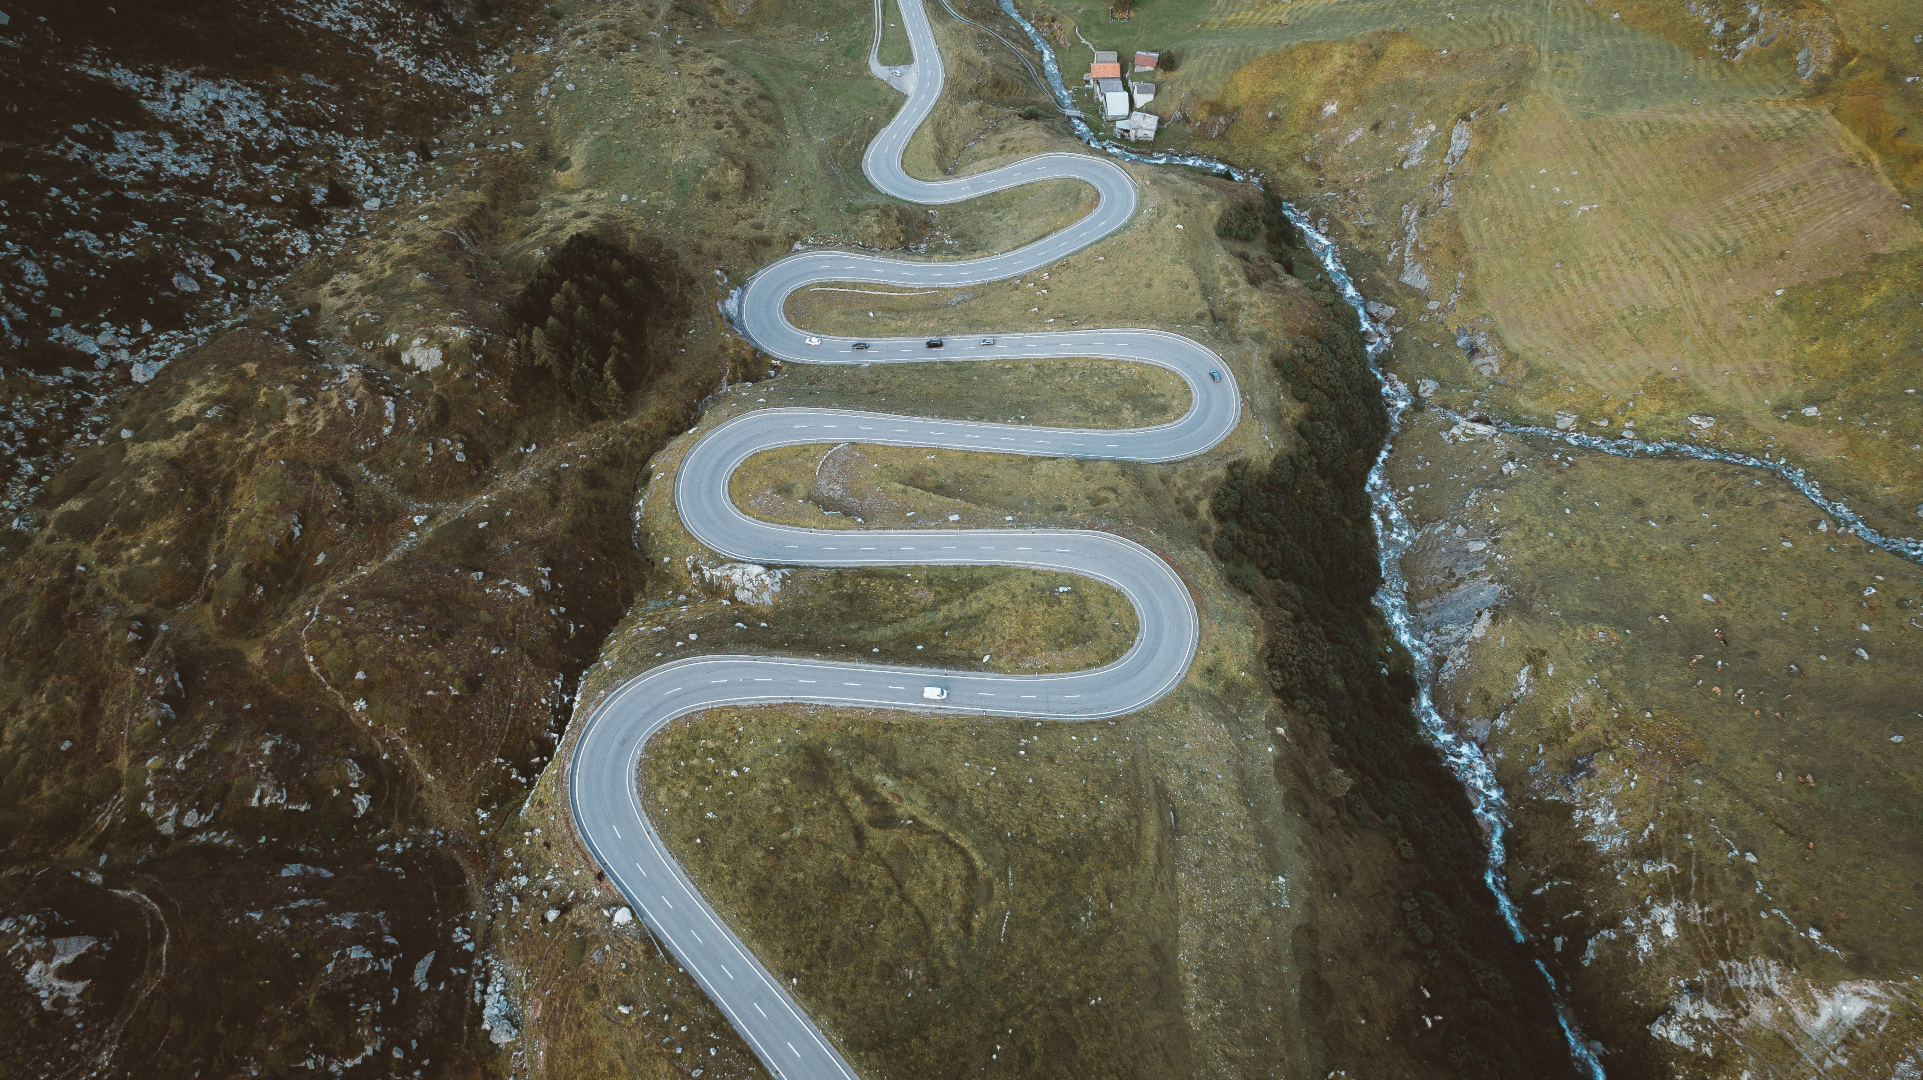 aerial photo of winding road